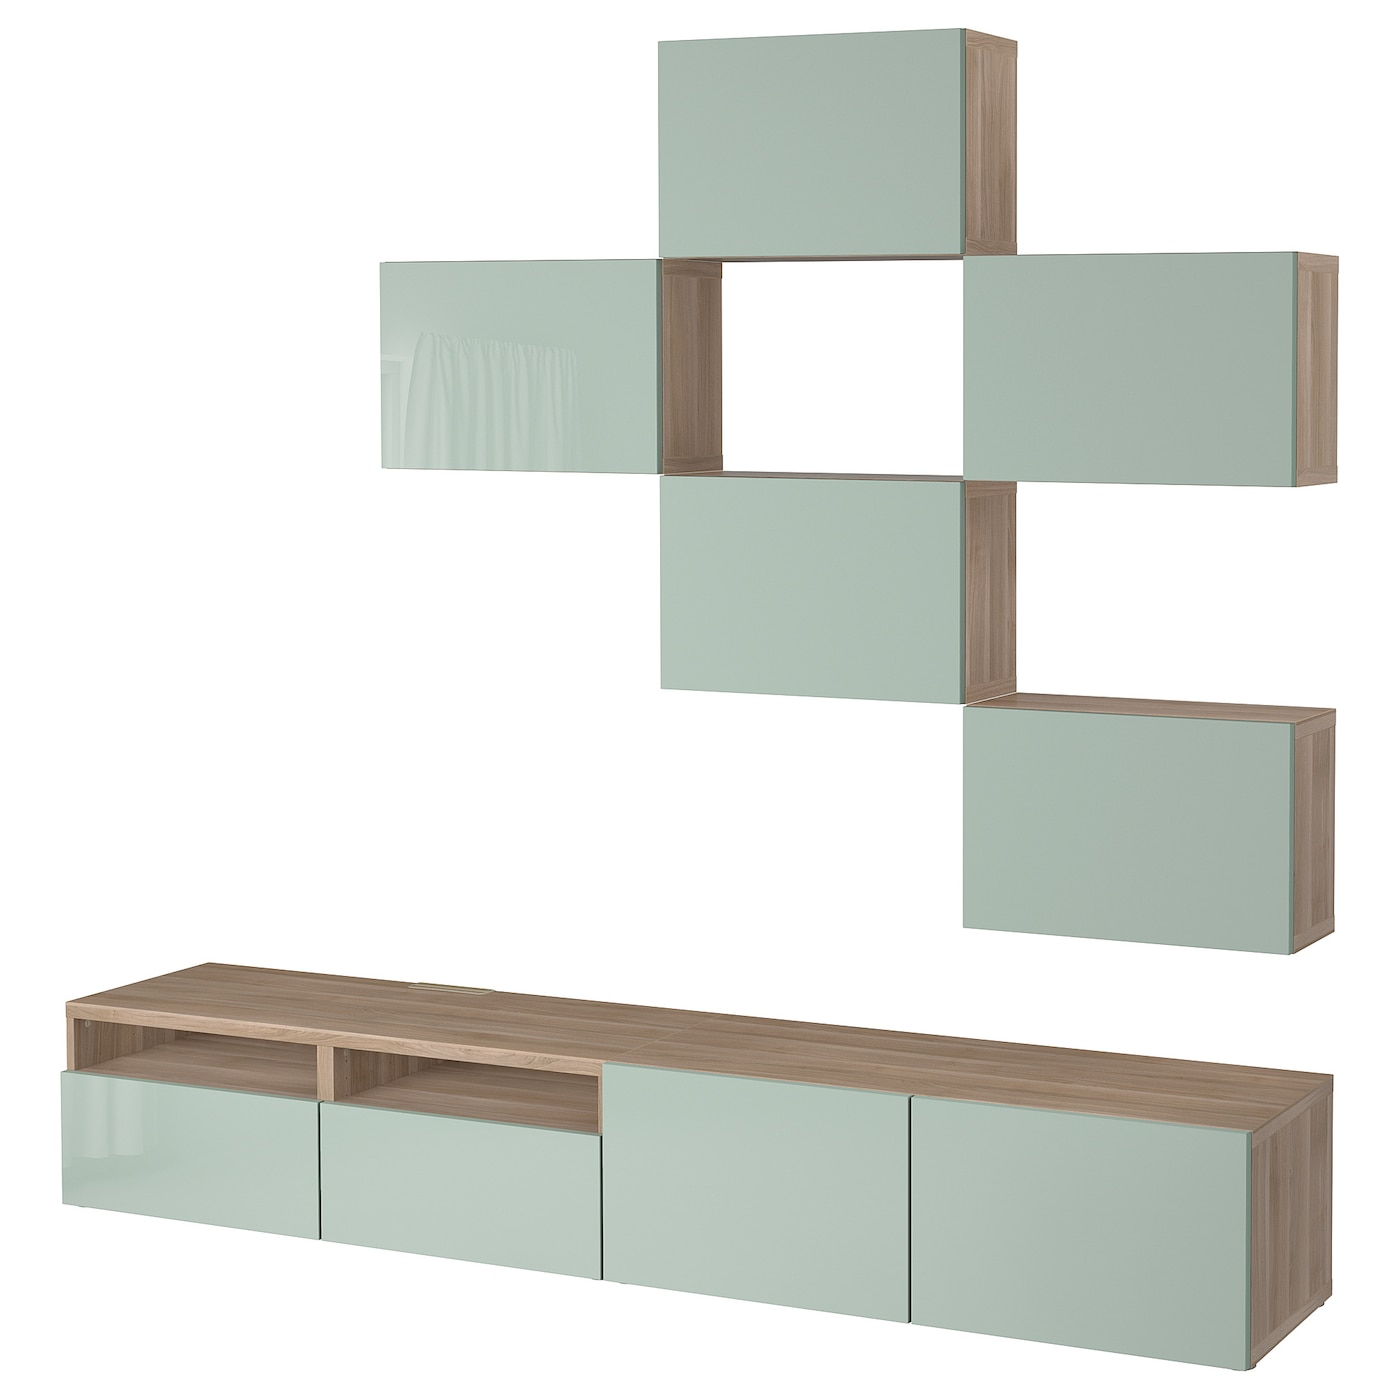 best combinaison meuble tv motif noyer teint gris selsviken brillant gris vert clair 240 x 20. Black Bedroom Furniture Sets. Home Design Ideas